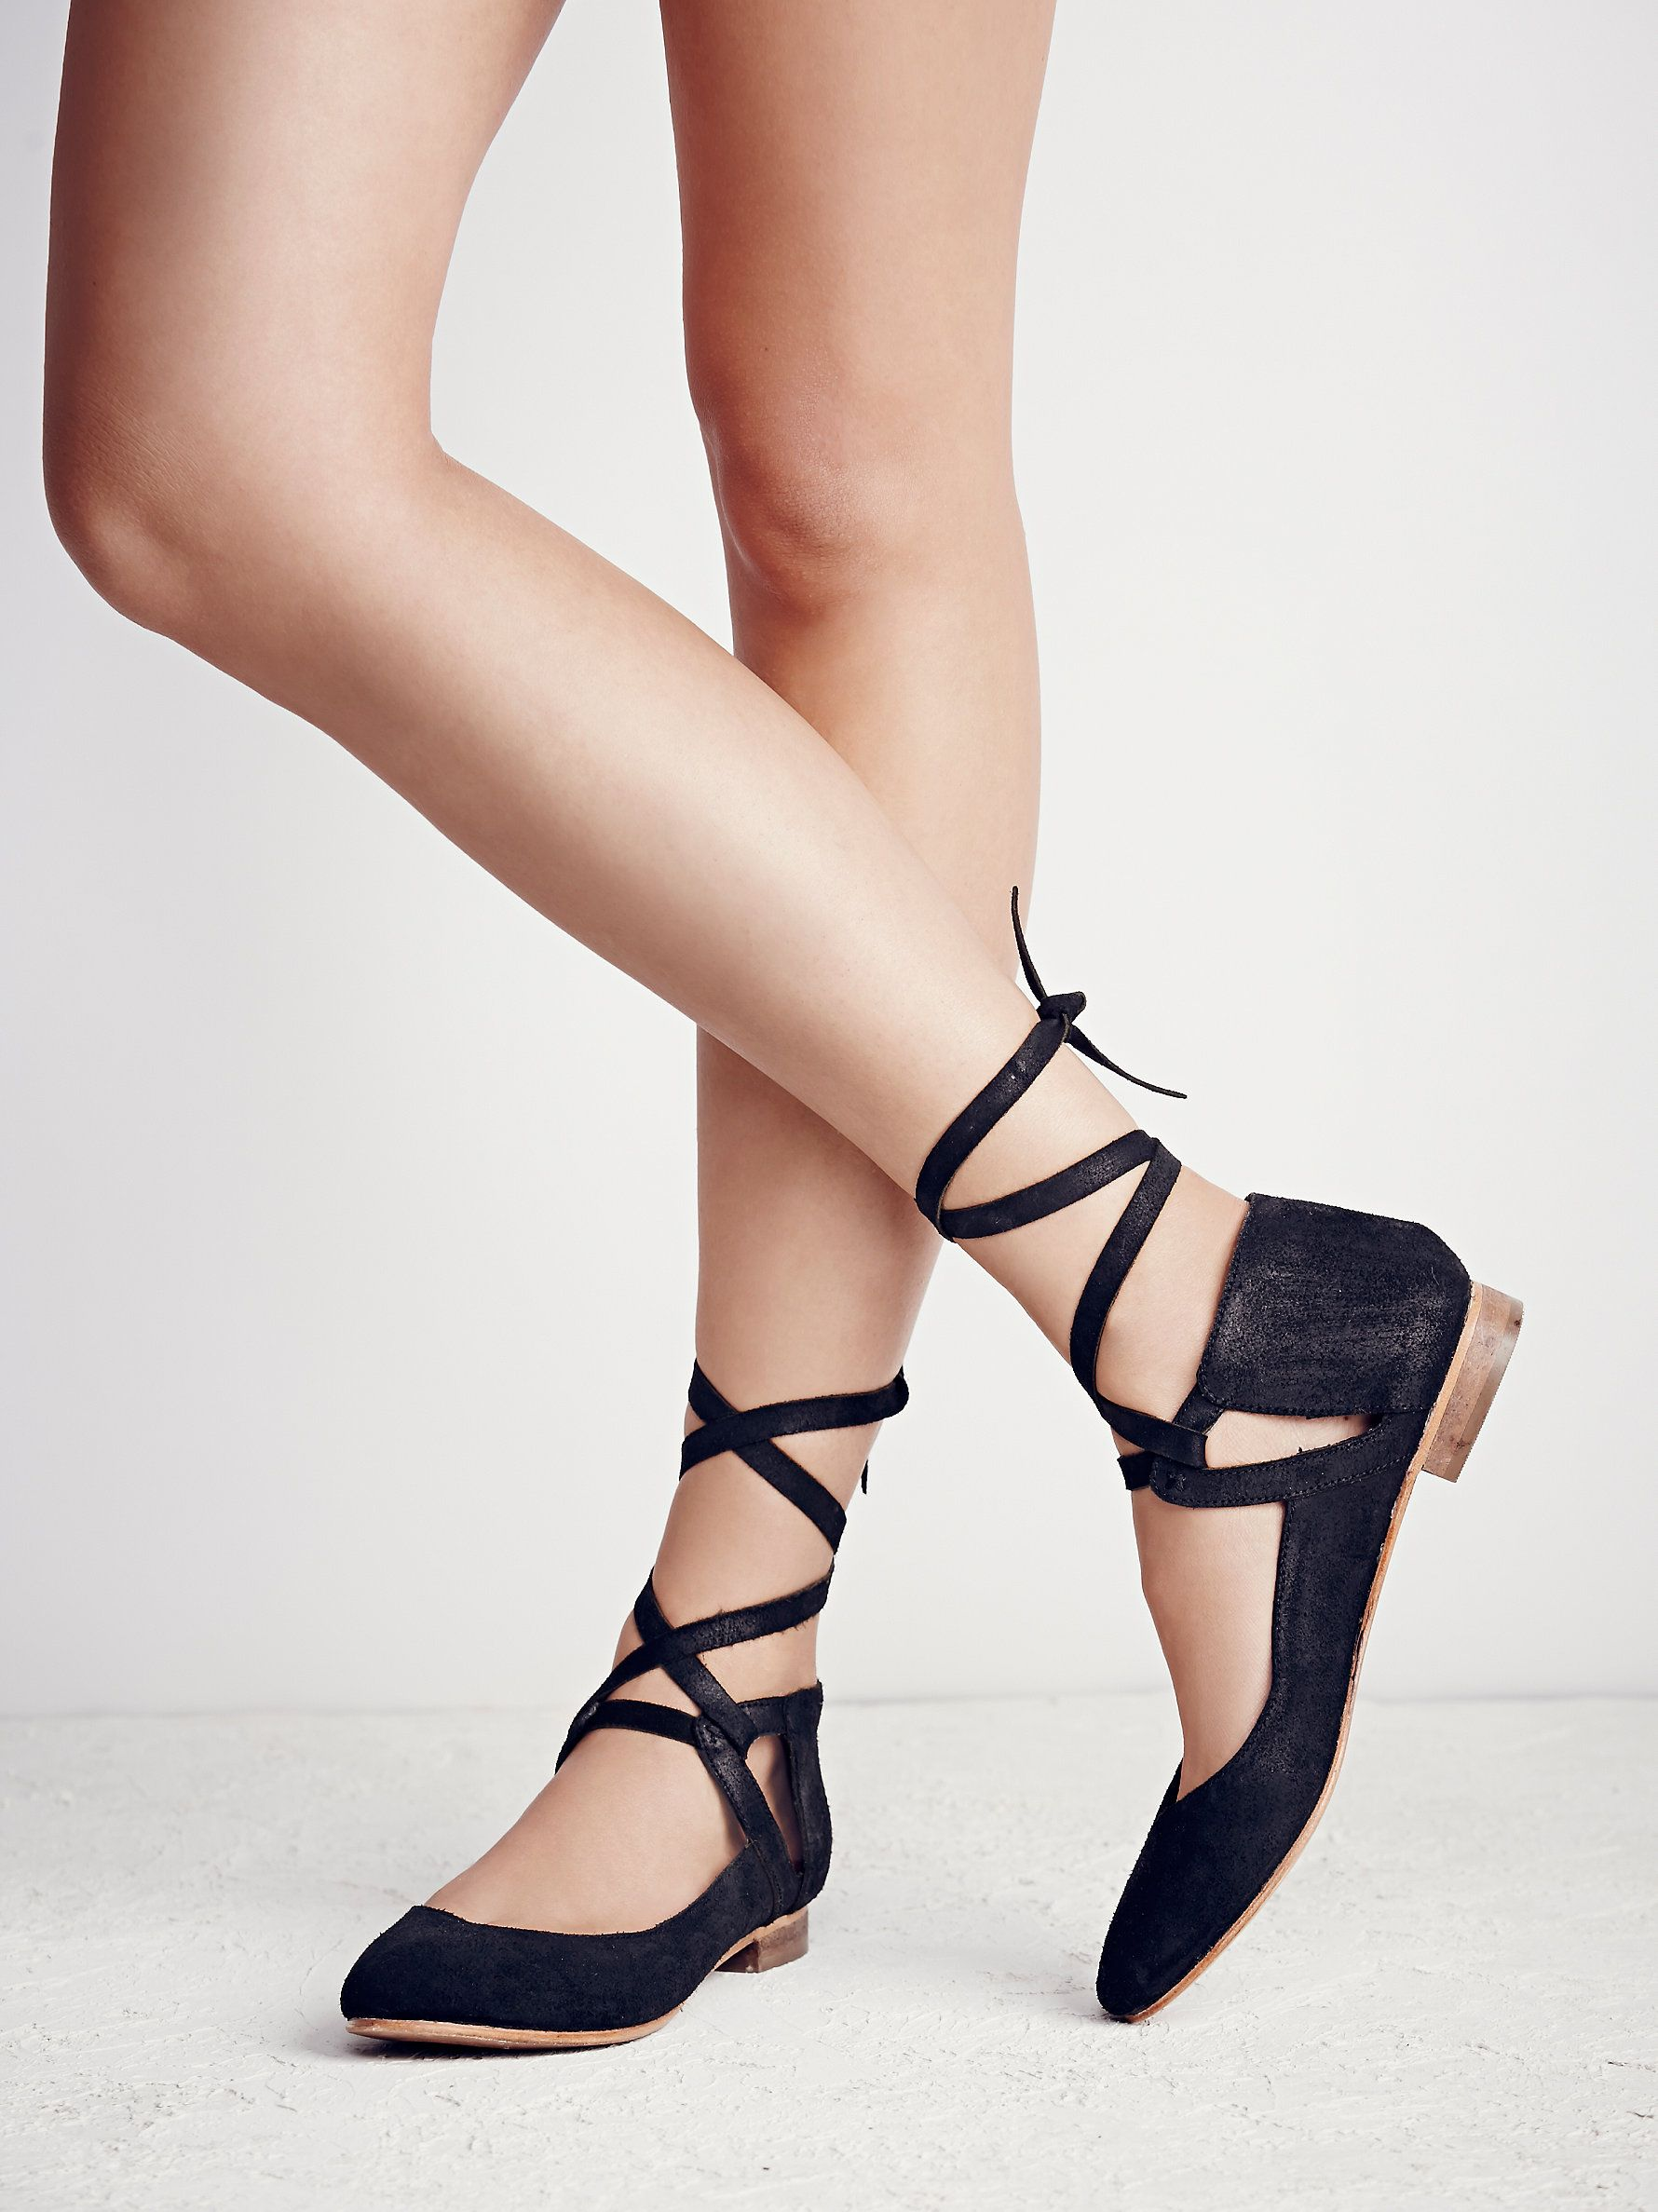 <3 Atlas Flat | Metallic leather or oiled suede ballet flat featuring adjustable ties. Rounded toe and a stacked heel.